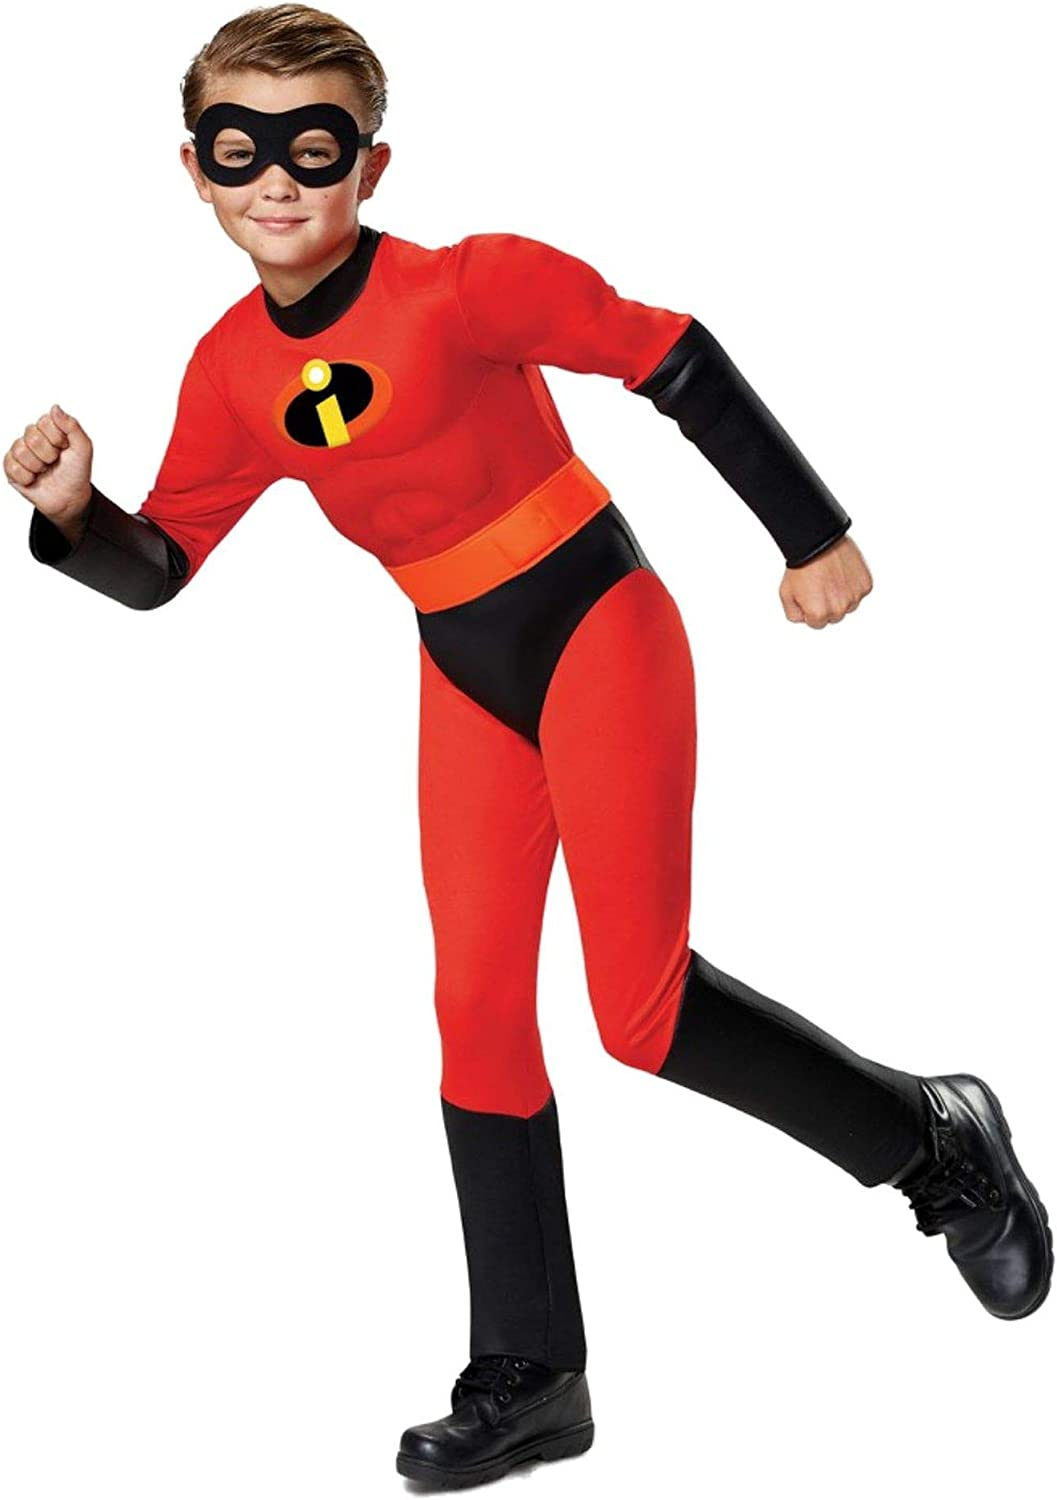 Disguise Disney Pixar Incredibles 2 Boys Size Medium 7-8 Dash Muscle Costume with Sound